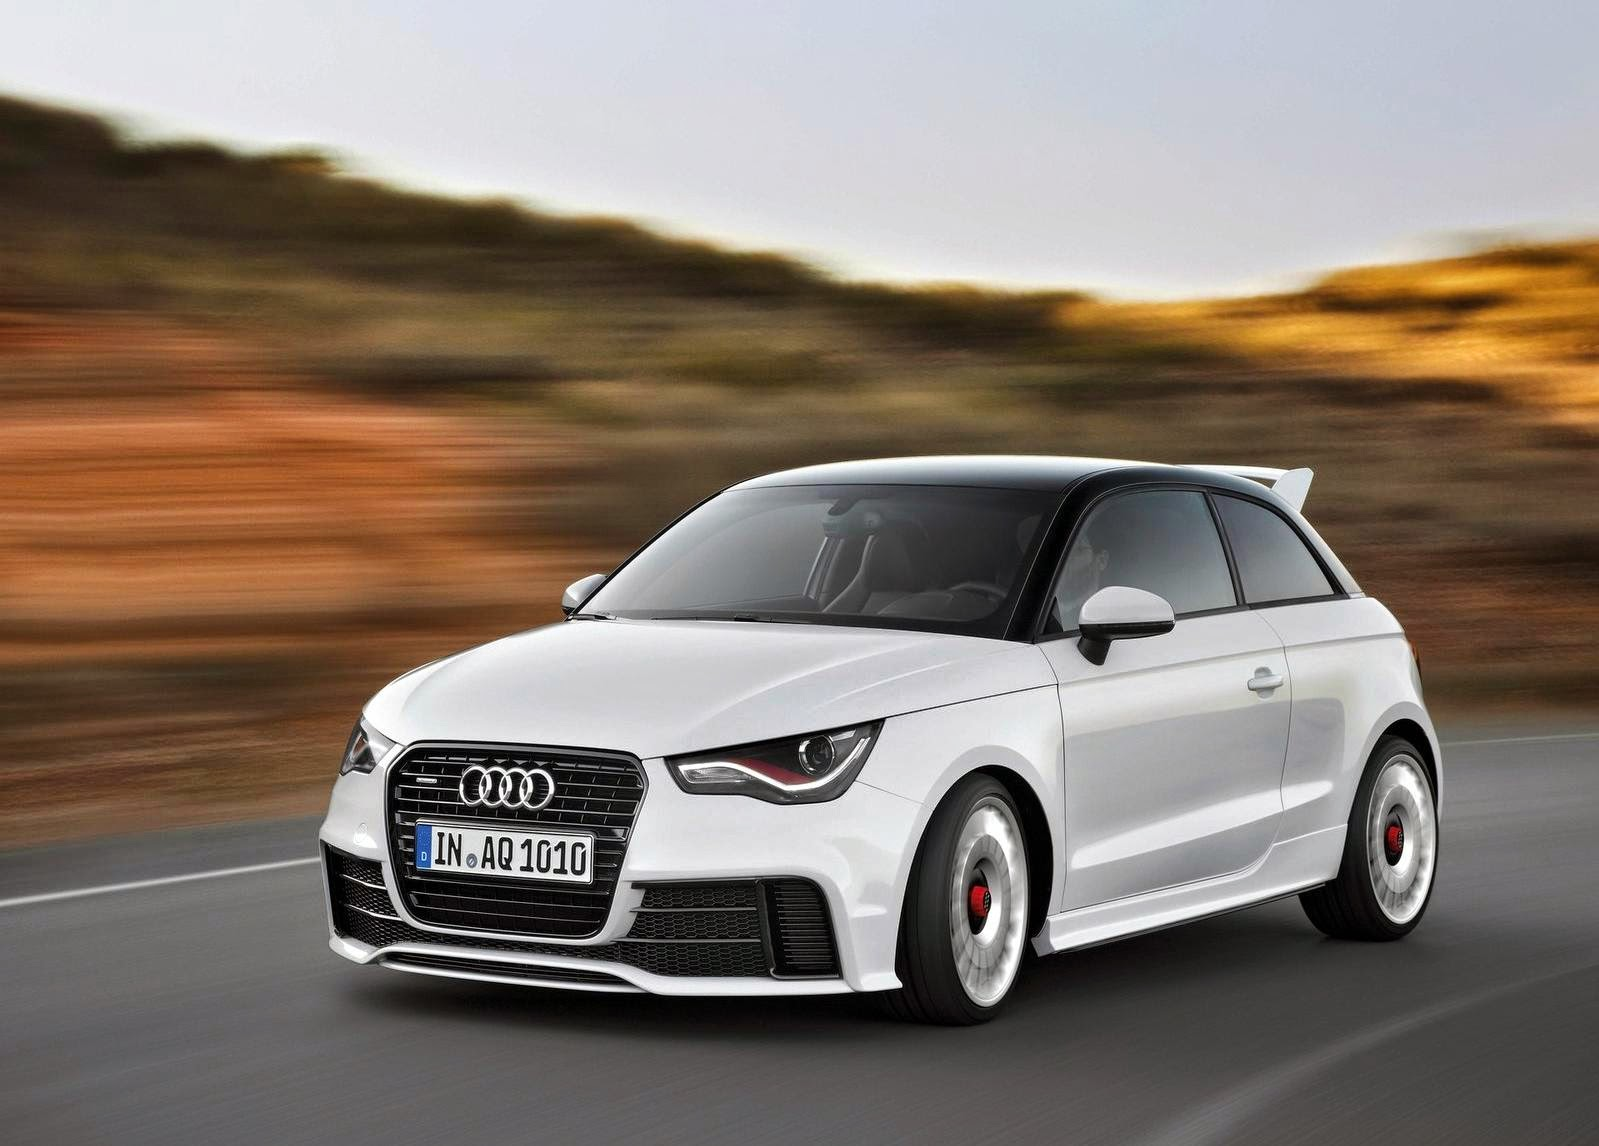 Audi A1 quattro 2013 Widescreen HD Wallpaper